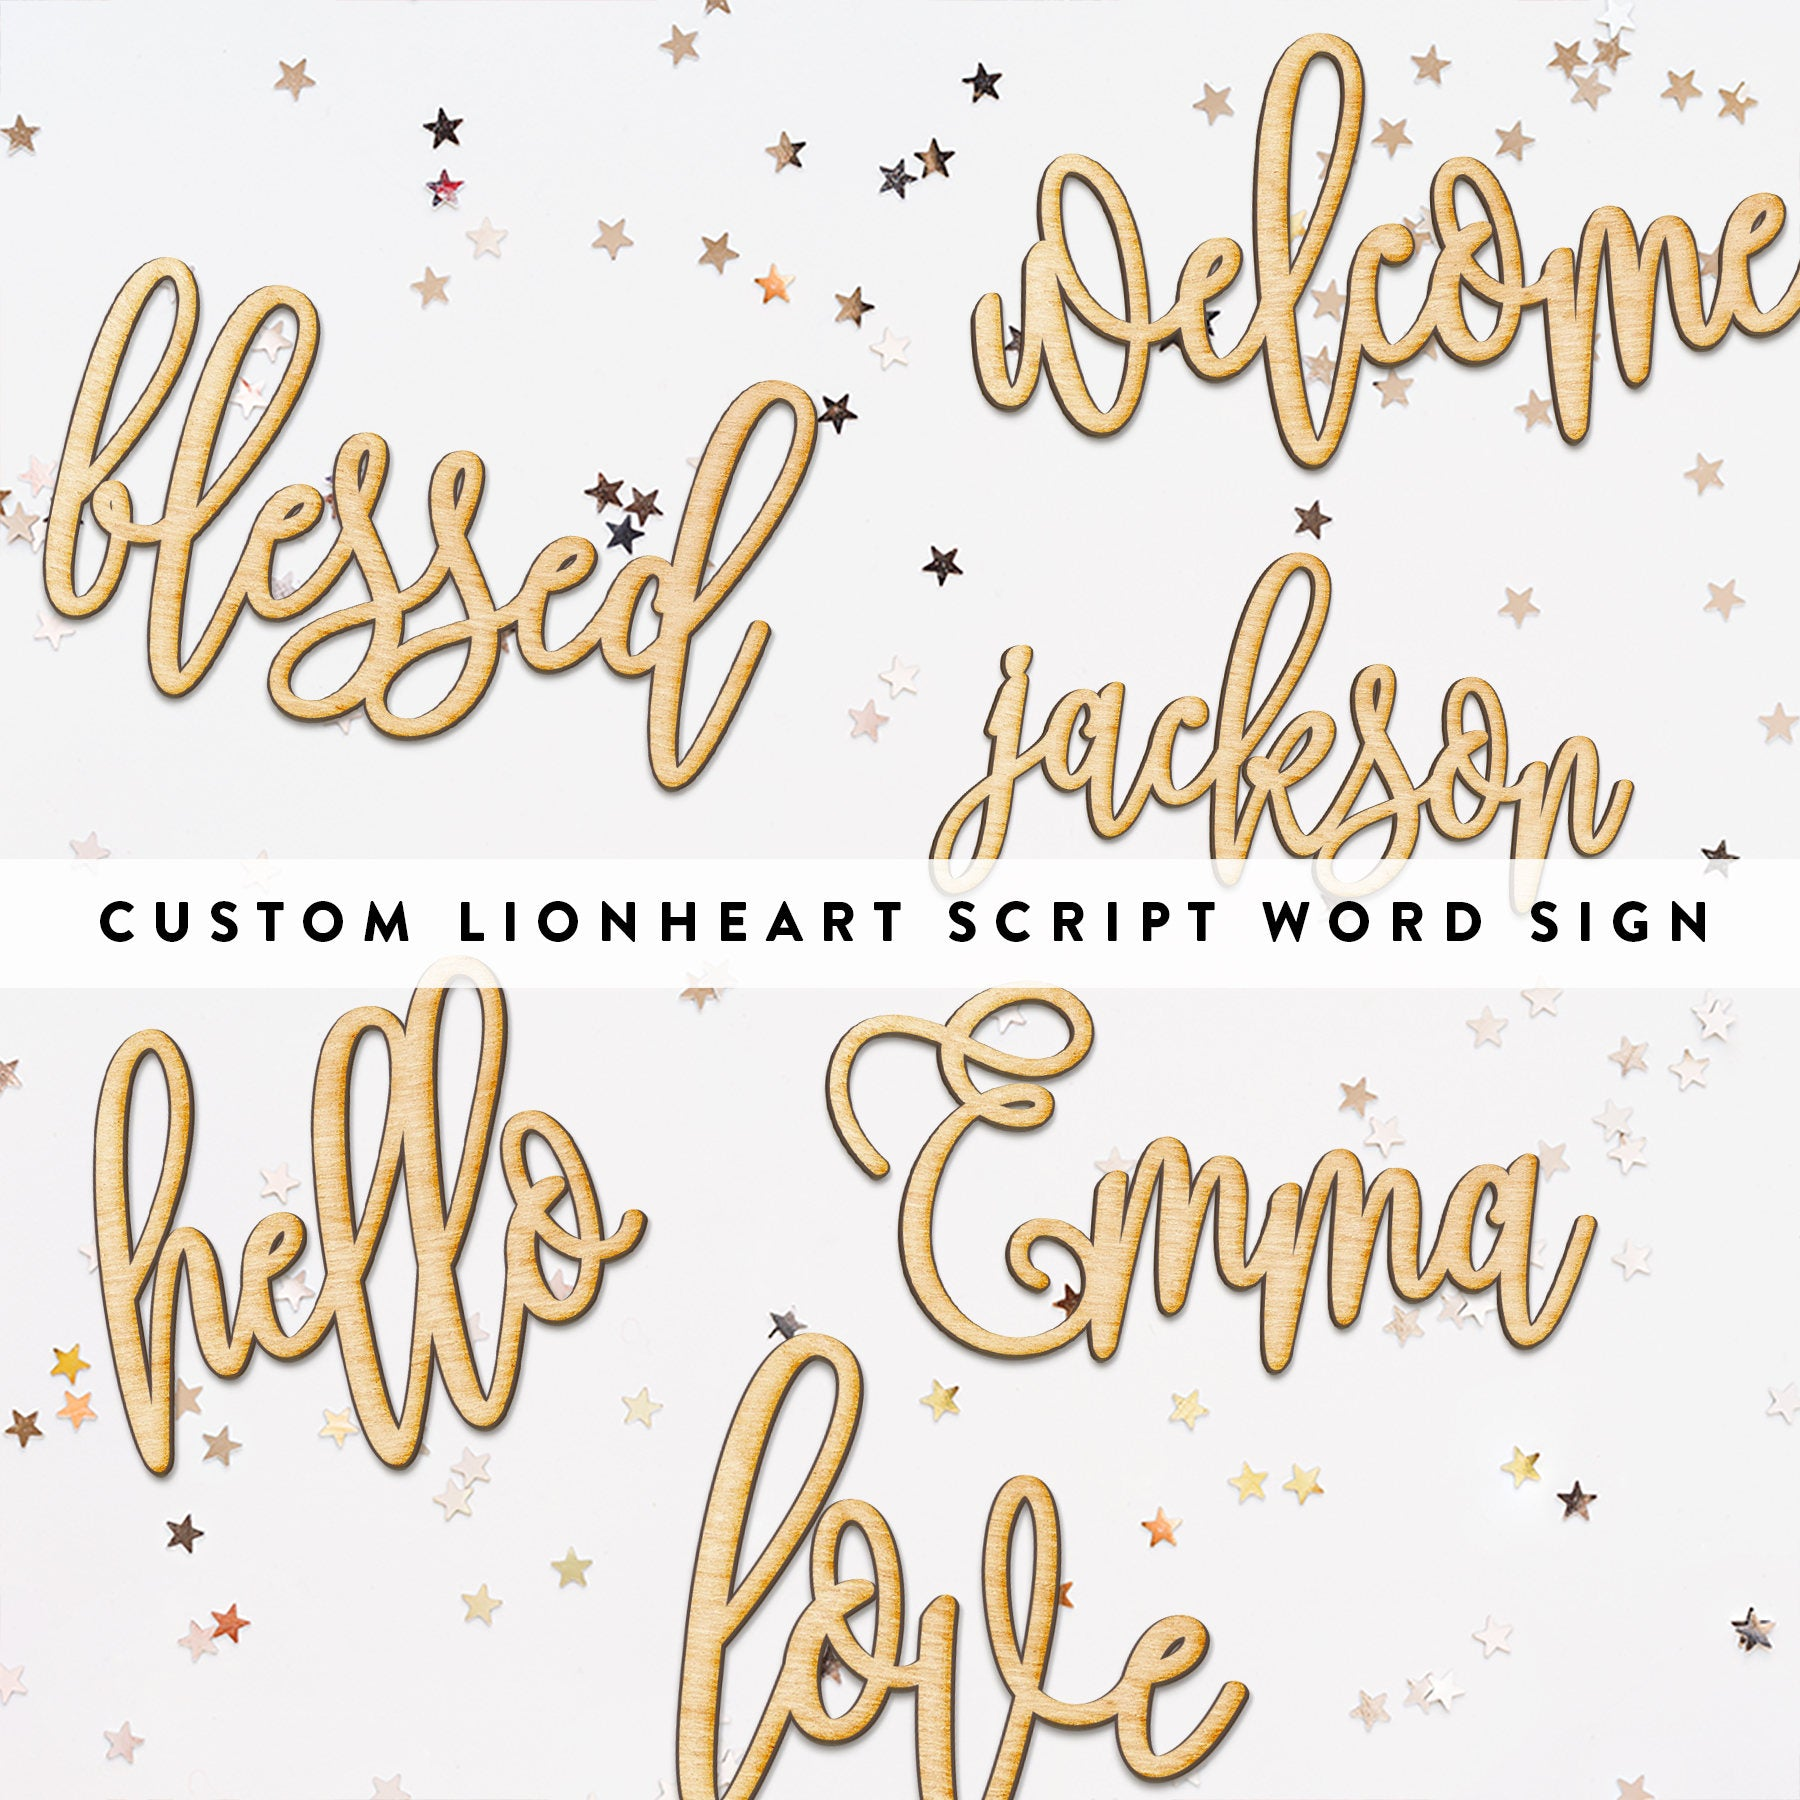 Custom Hand Drawn Lionheart Script Word Wood Sign